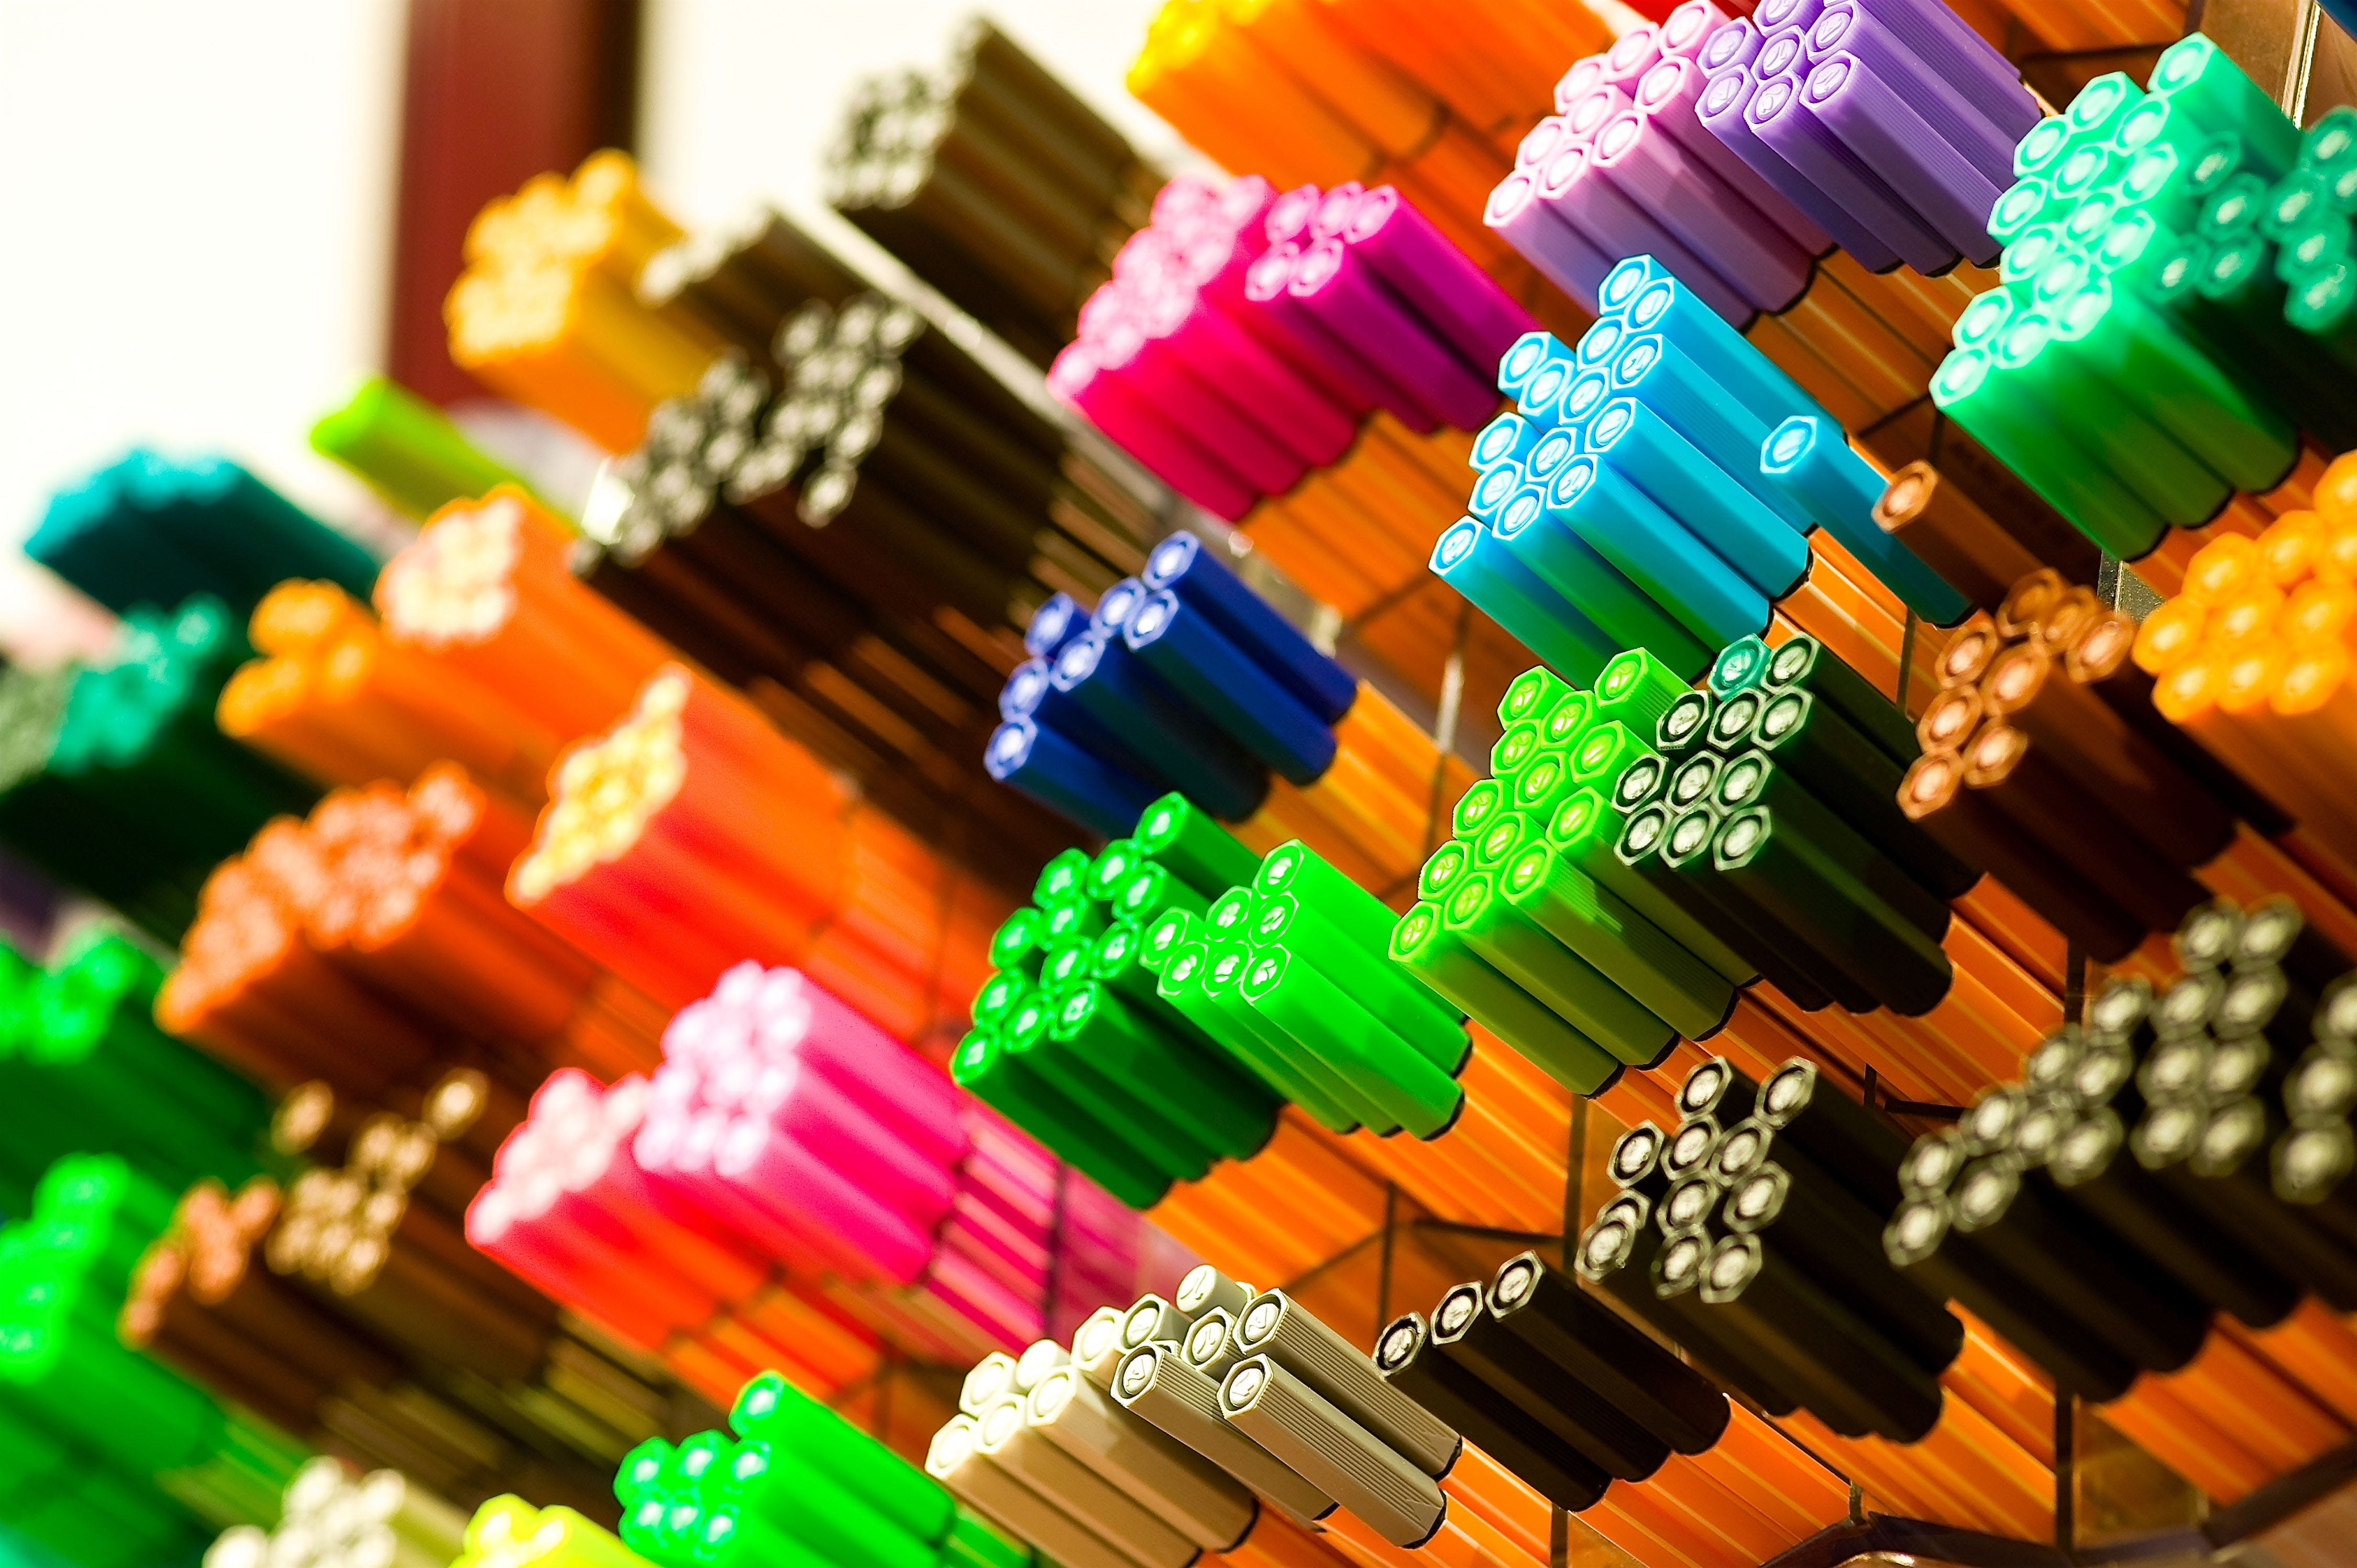 Focus Photography of Colored Pens